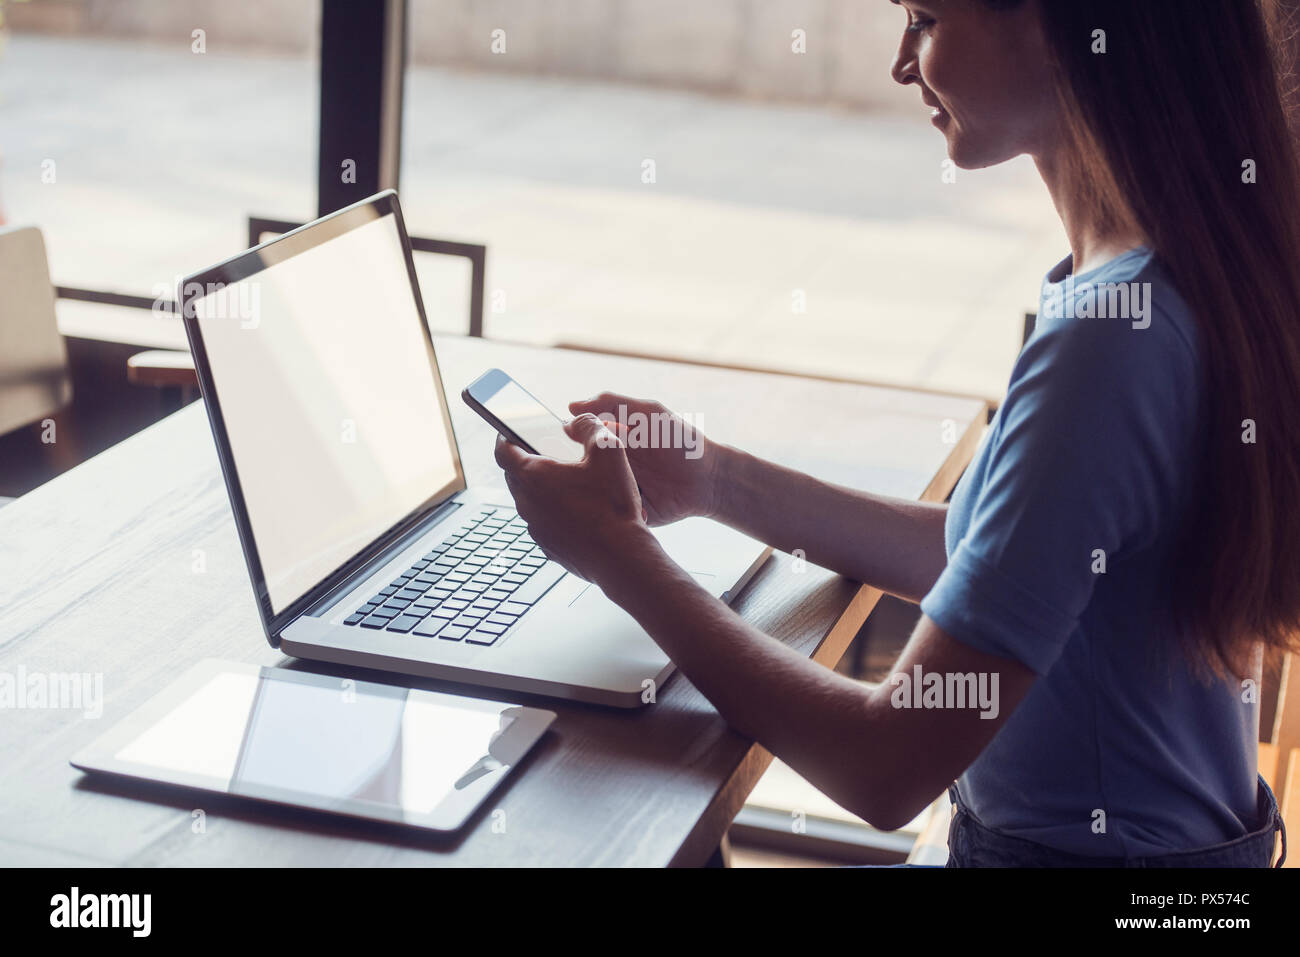 close up multitasking woman using tablet, laptop and cellphone, with blank screens, indoors on a table - Stock Image